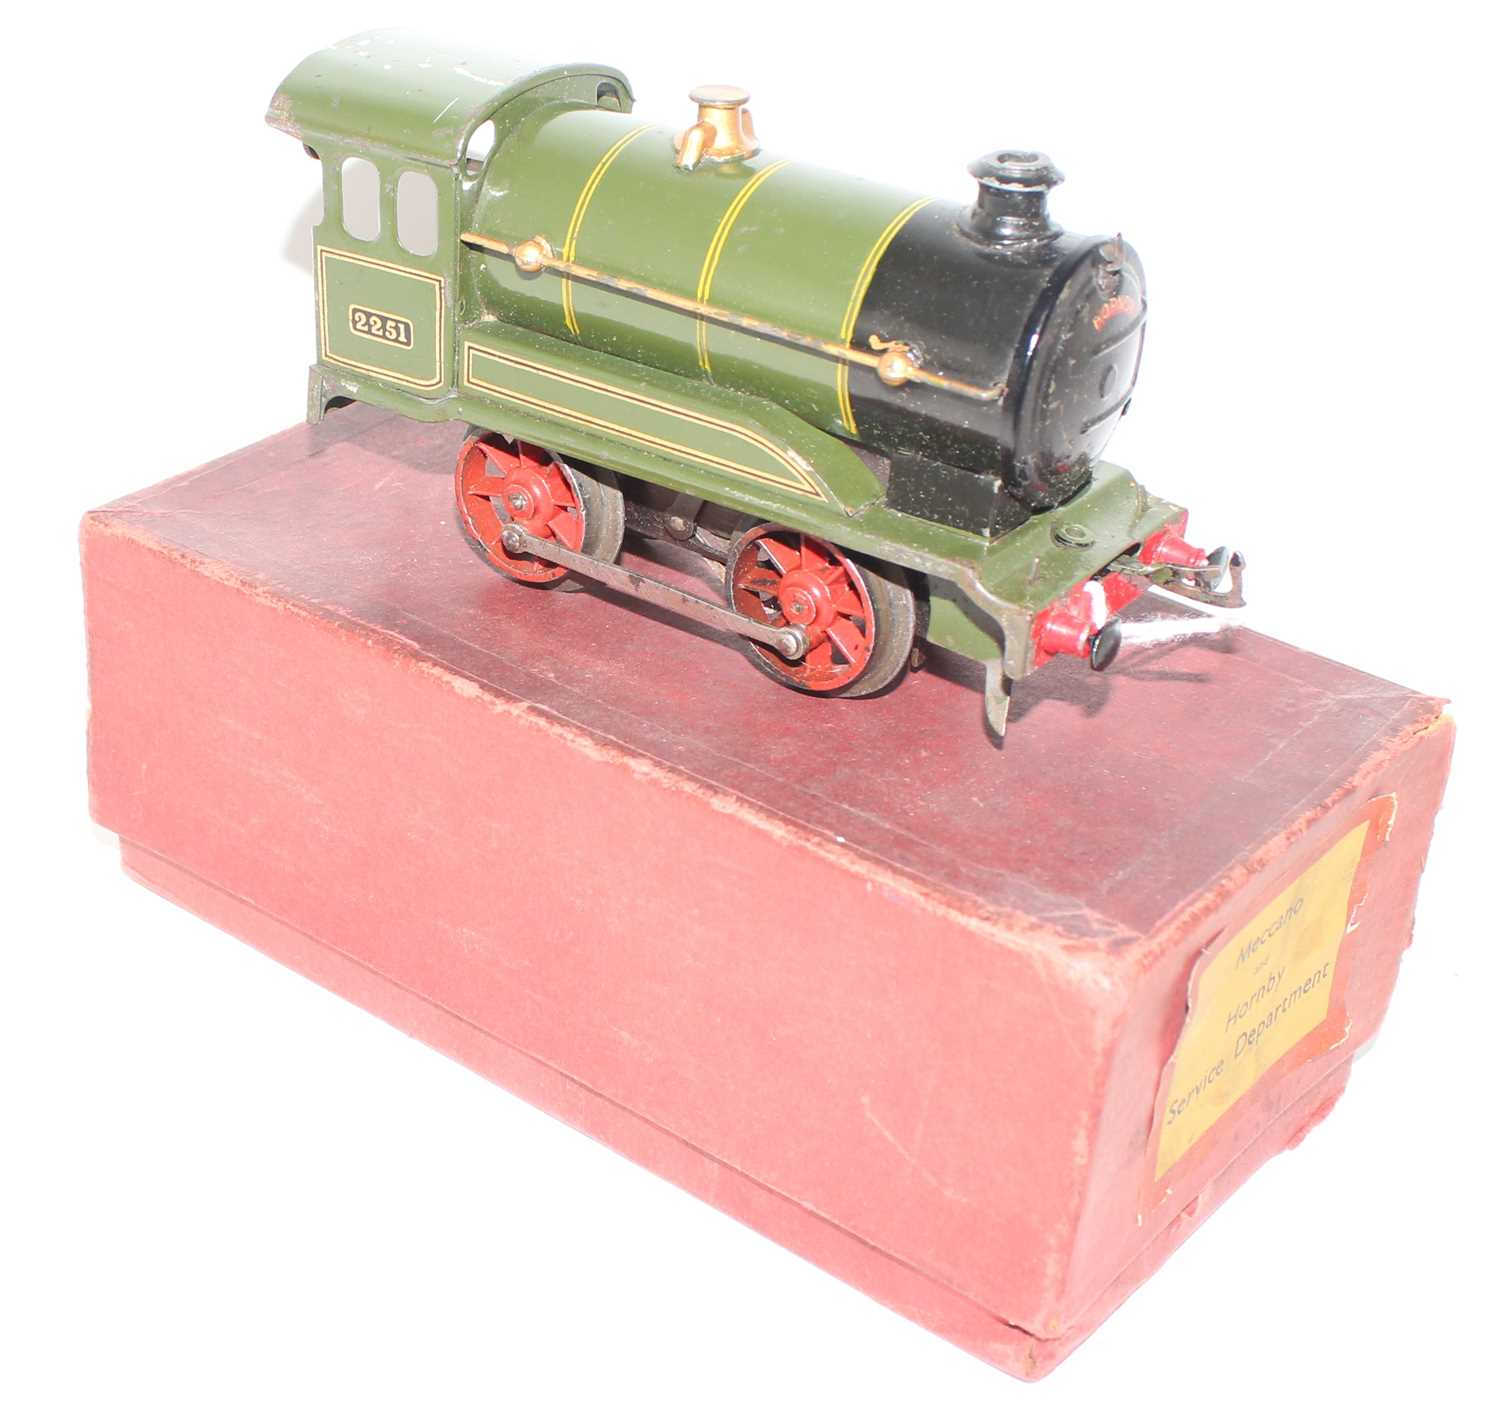 Hornby 1931-35 Clockwork No.0 revised body style 0-4-0 loco only, missing tender, GW Green, No. - Image 2 of 4